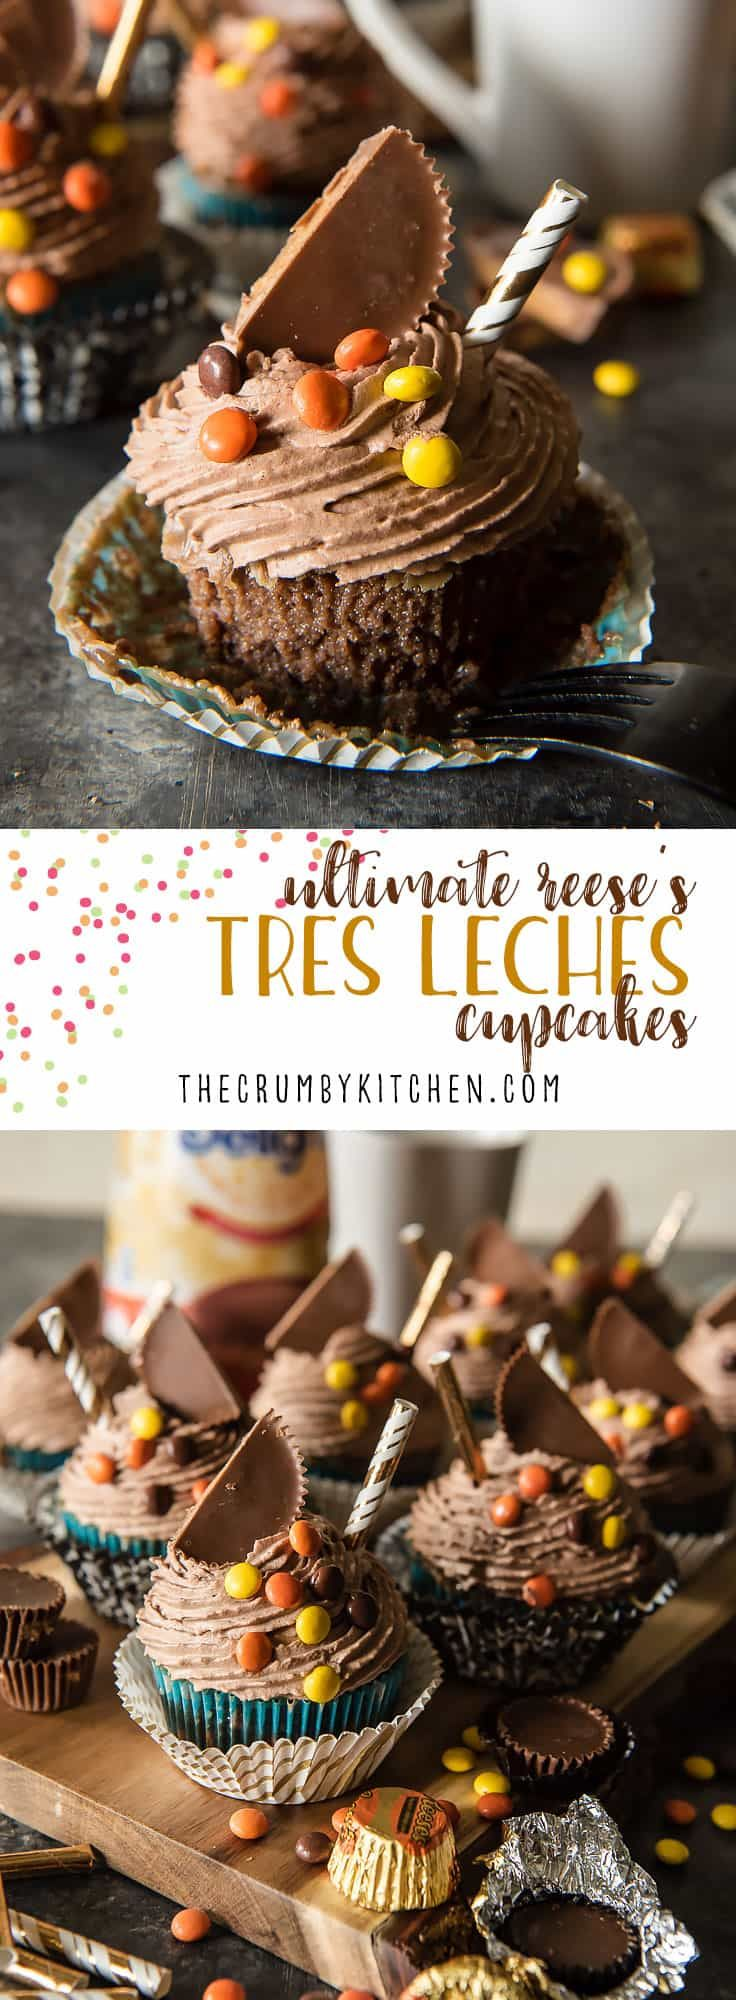 These super-moist, delicious Ultimate REESE'S Tres Leches Cupcakes take classic tres leches cake, shrink it down, and add a fun peanut butter twist! The ganache and chocolate whipped cream truly make these treats irresistible! #chocolate #tresleches #cupcake #reeses #peanutbutter #dessert #recipe #ad #DelightfulMoments @walmart